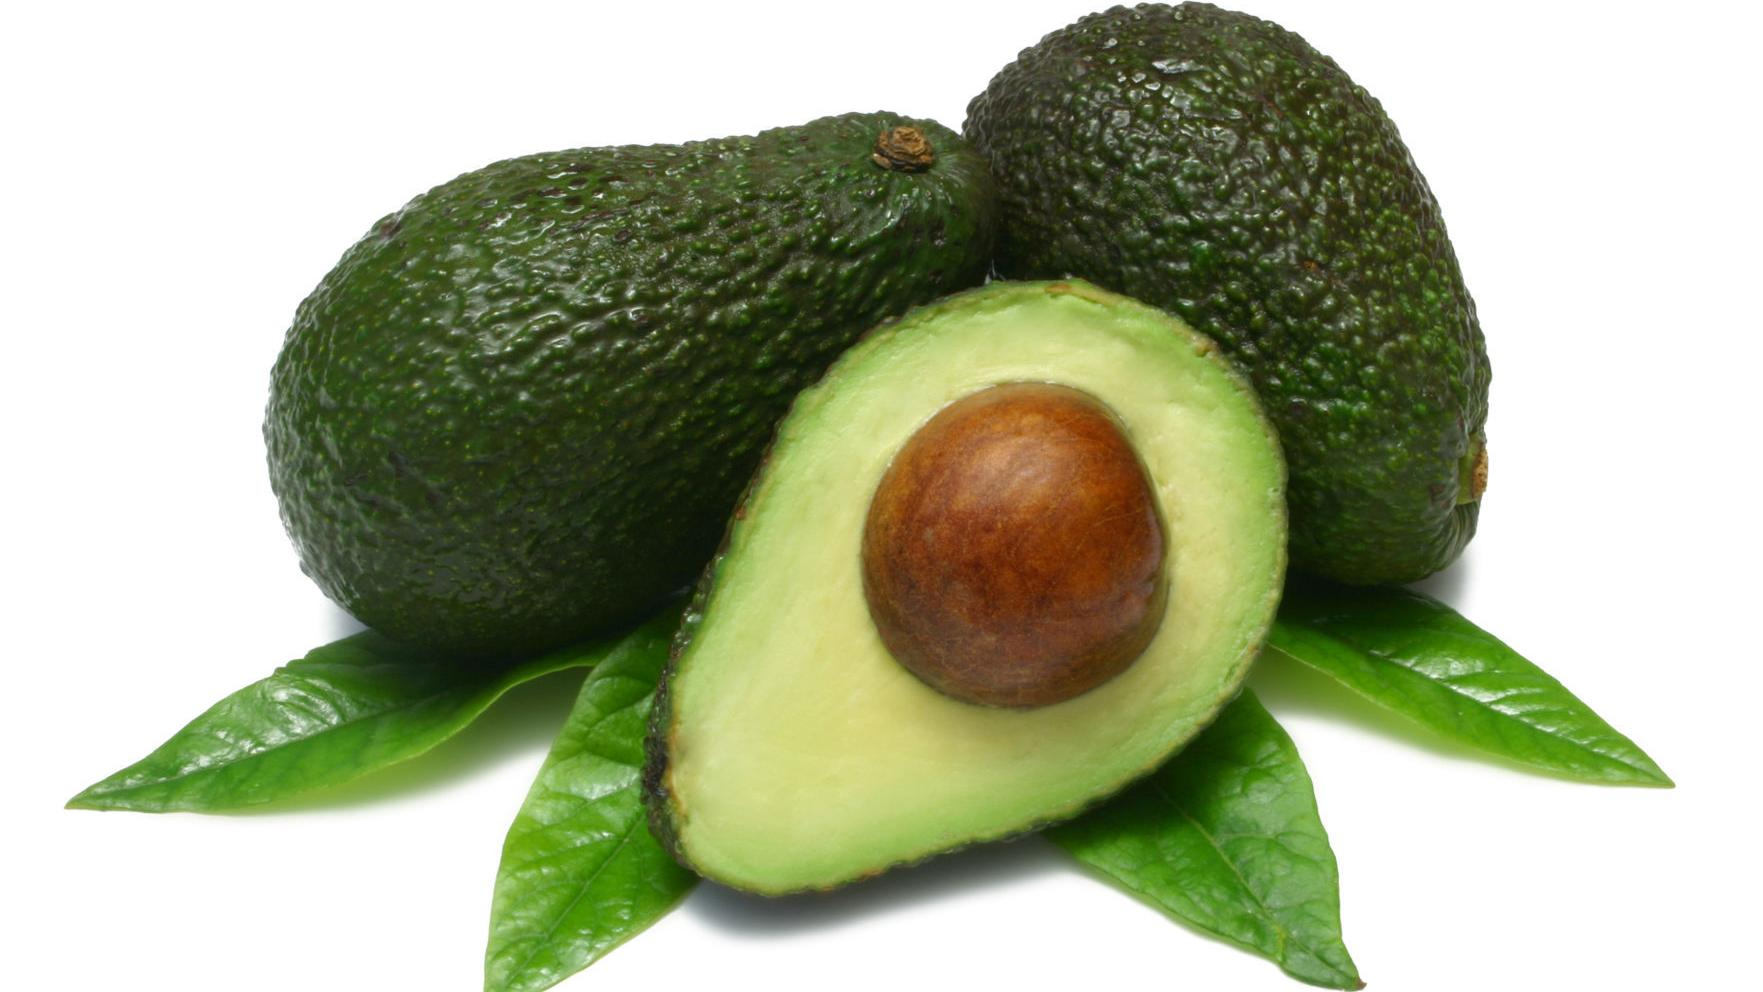 how to choose a perfect avocado and other food questions answered food napavalleyregister com